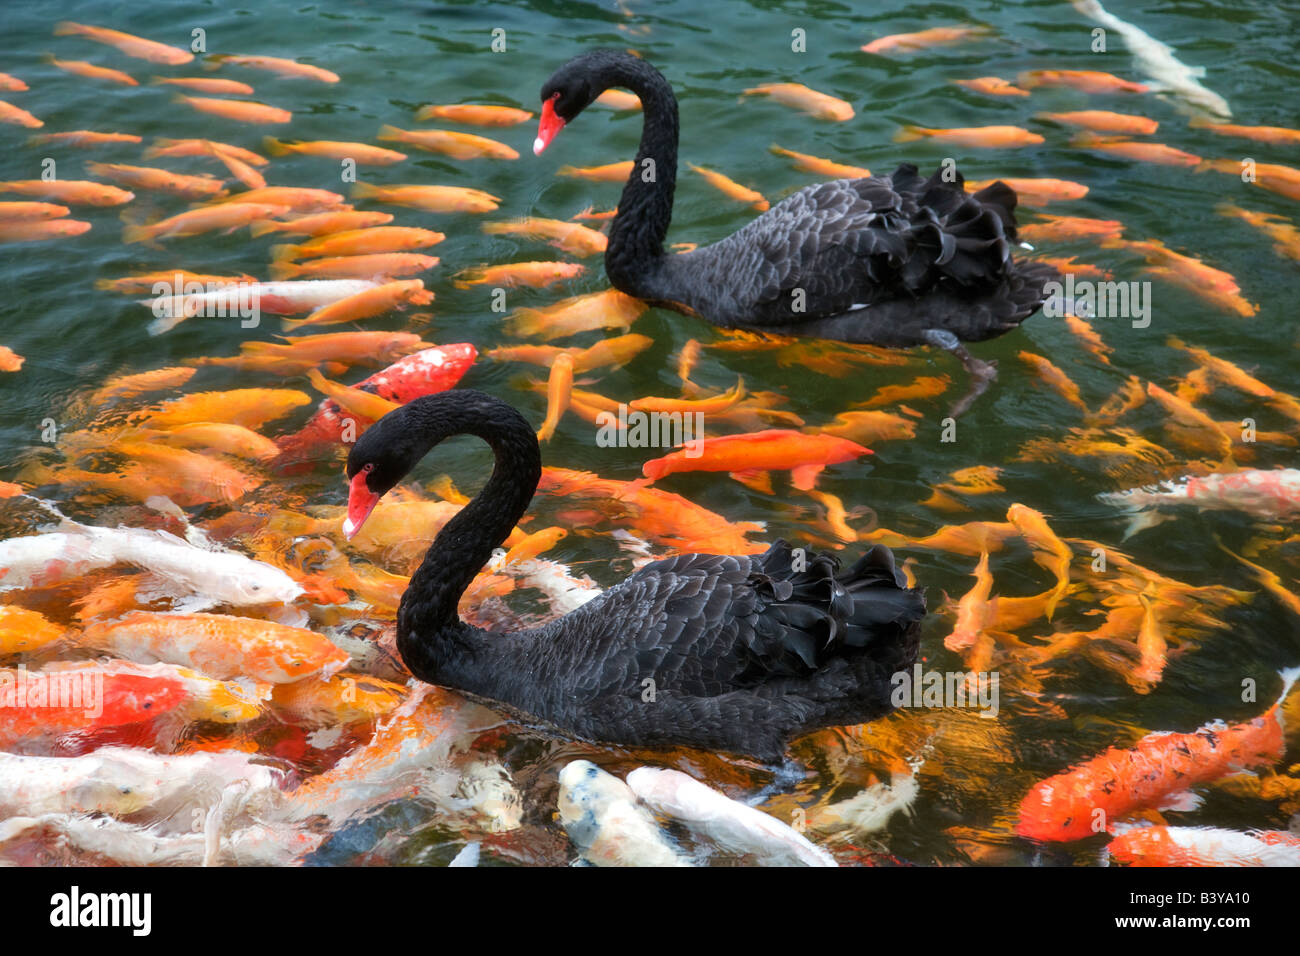 Black swan and koi fish hyatt hotel kauai hawaii stock for All black koi fish